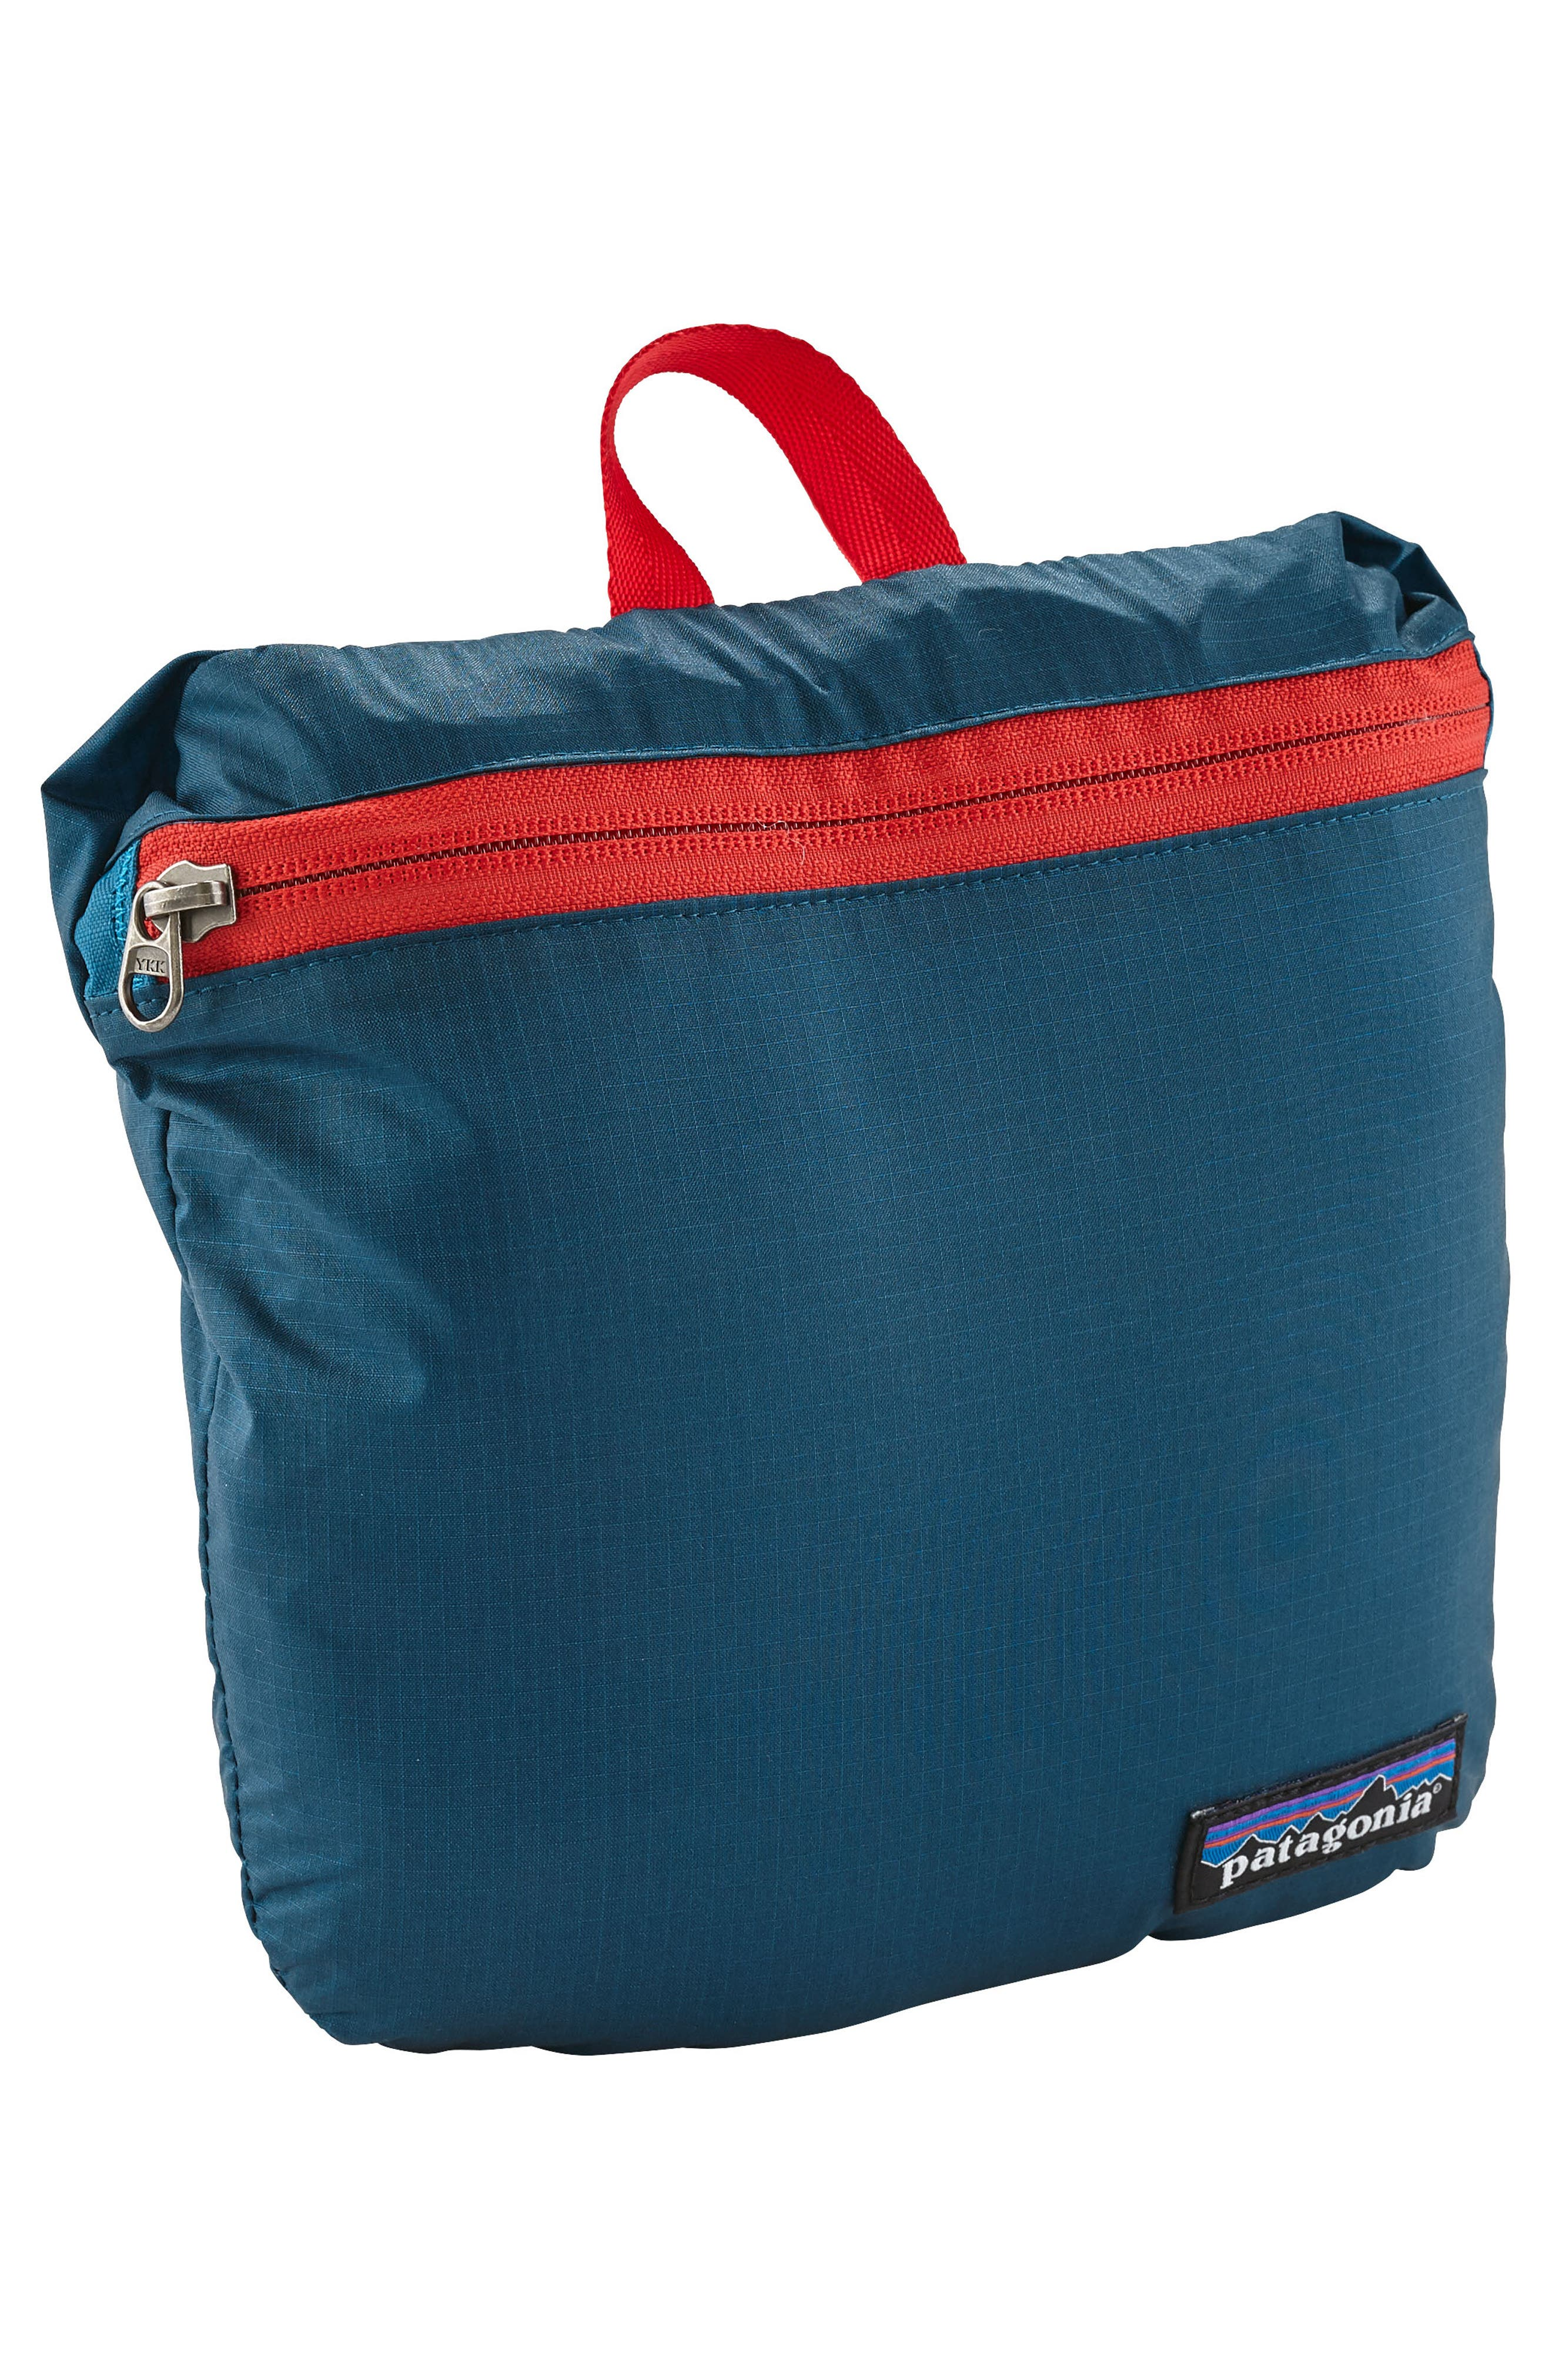 Tote Backpack,                             Alternate thumbnail 3, color,                             407